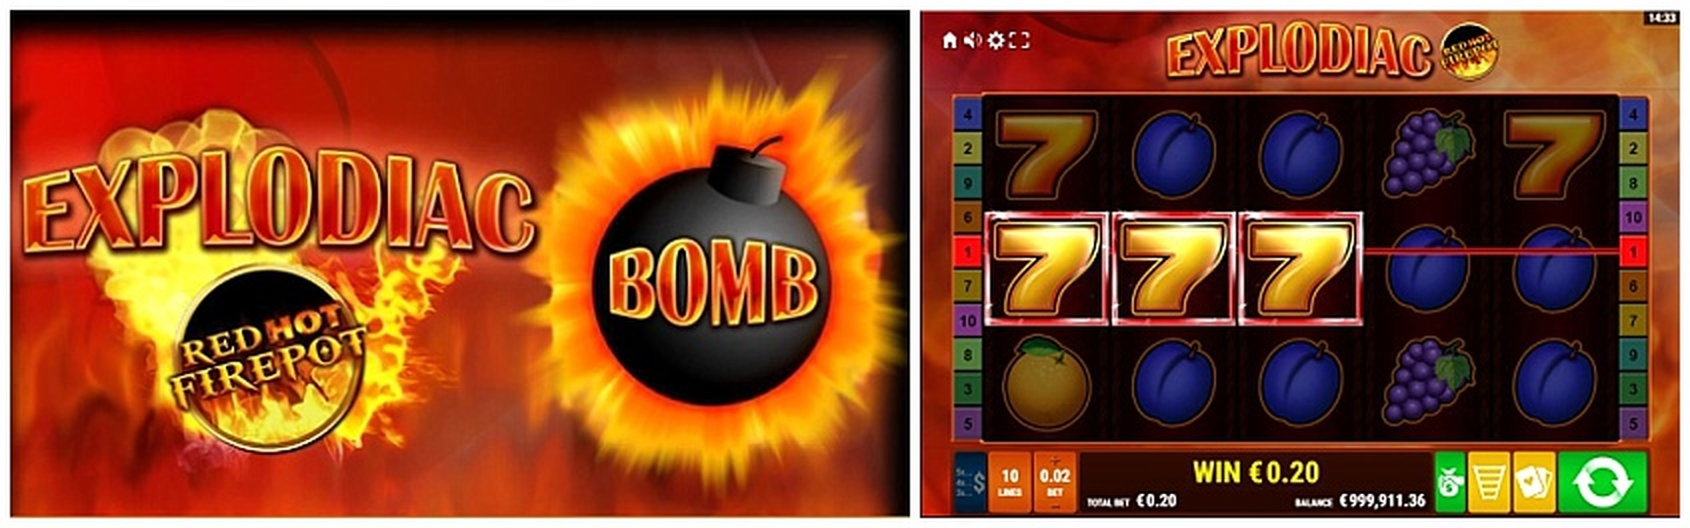 The Explodiac Maxi Play Online Slot Demo Game by Gamomat